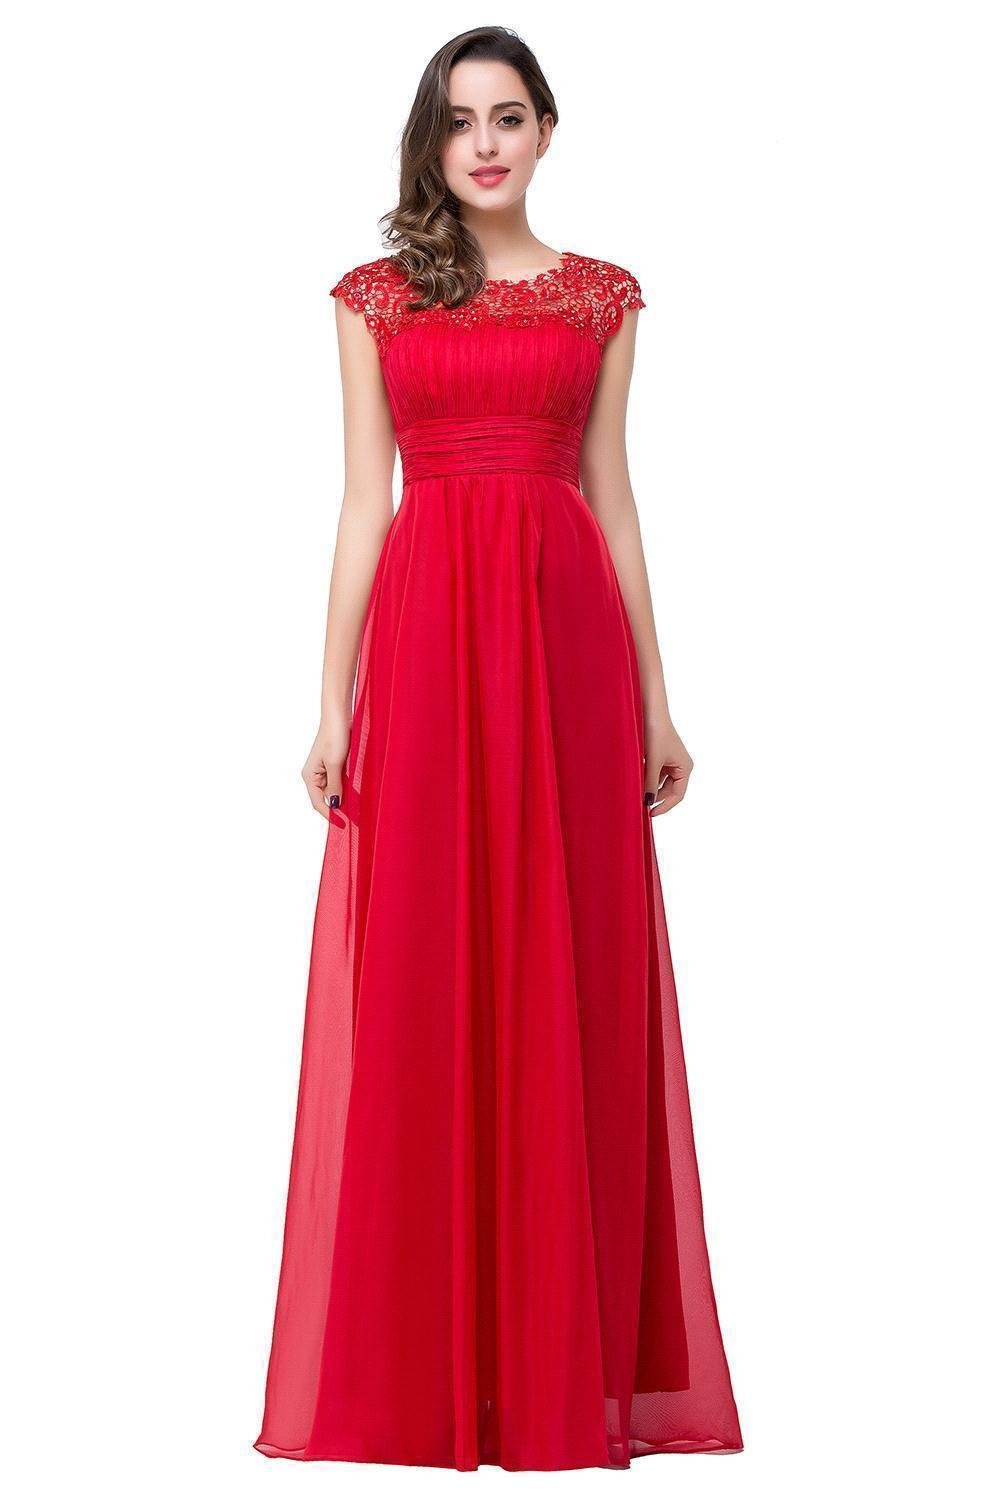 Q Best Christmas Gift~ Big Promotion For Christmas Day! Long Chiffon Lace Open Back A-Line Beaded Capped-Sleeves Party Dresses (4, Red)